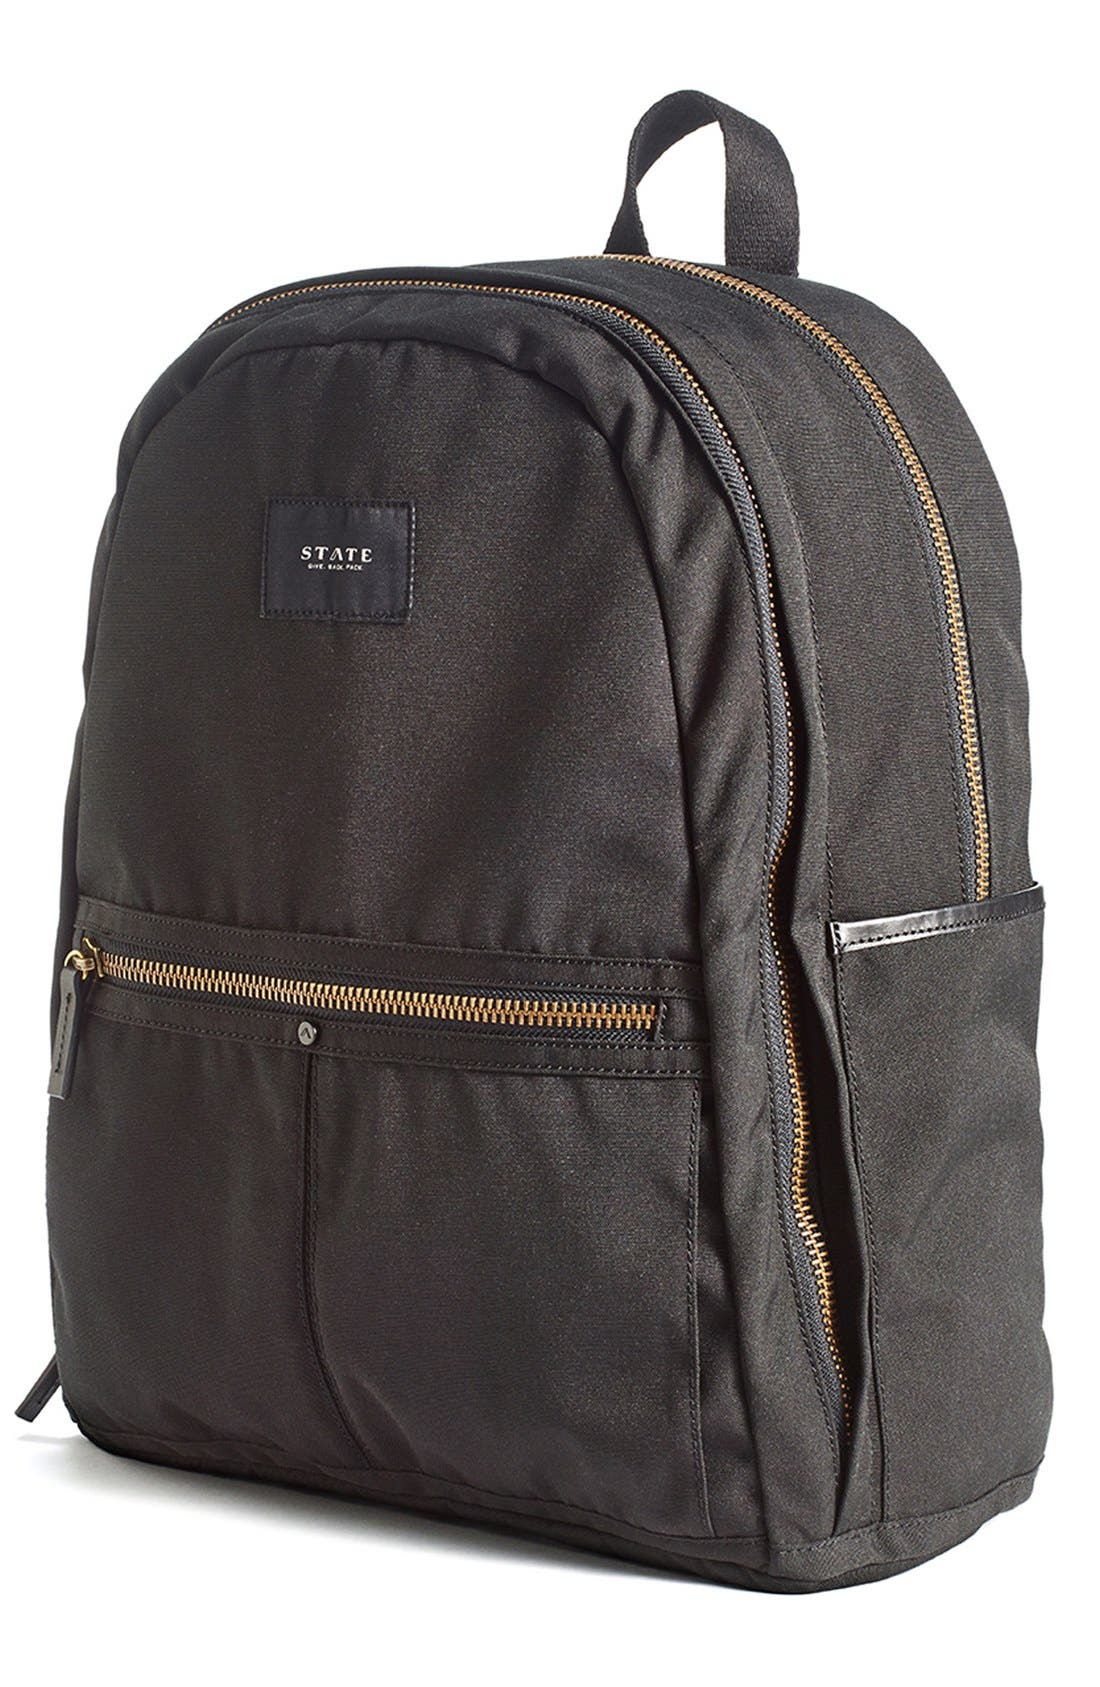 'Union' Water Resistant Backpack with Leather Trim,                             Alternate thumbnail 3, color,                             001